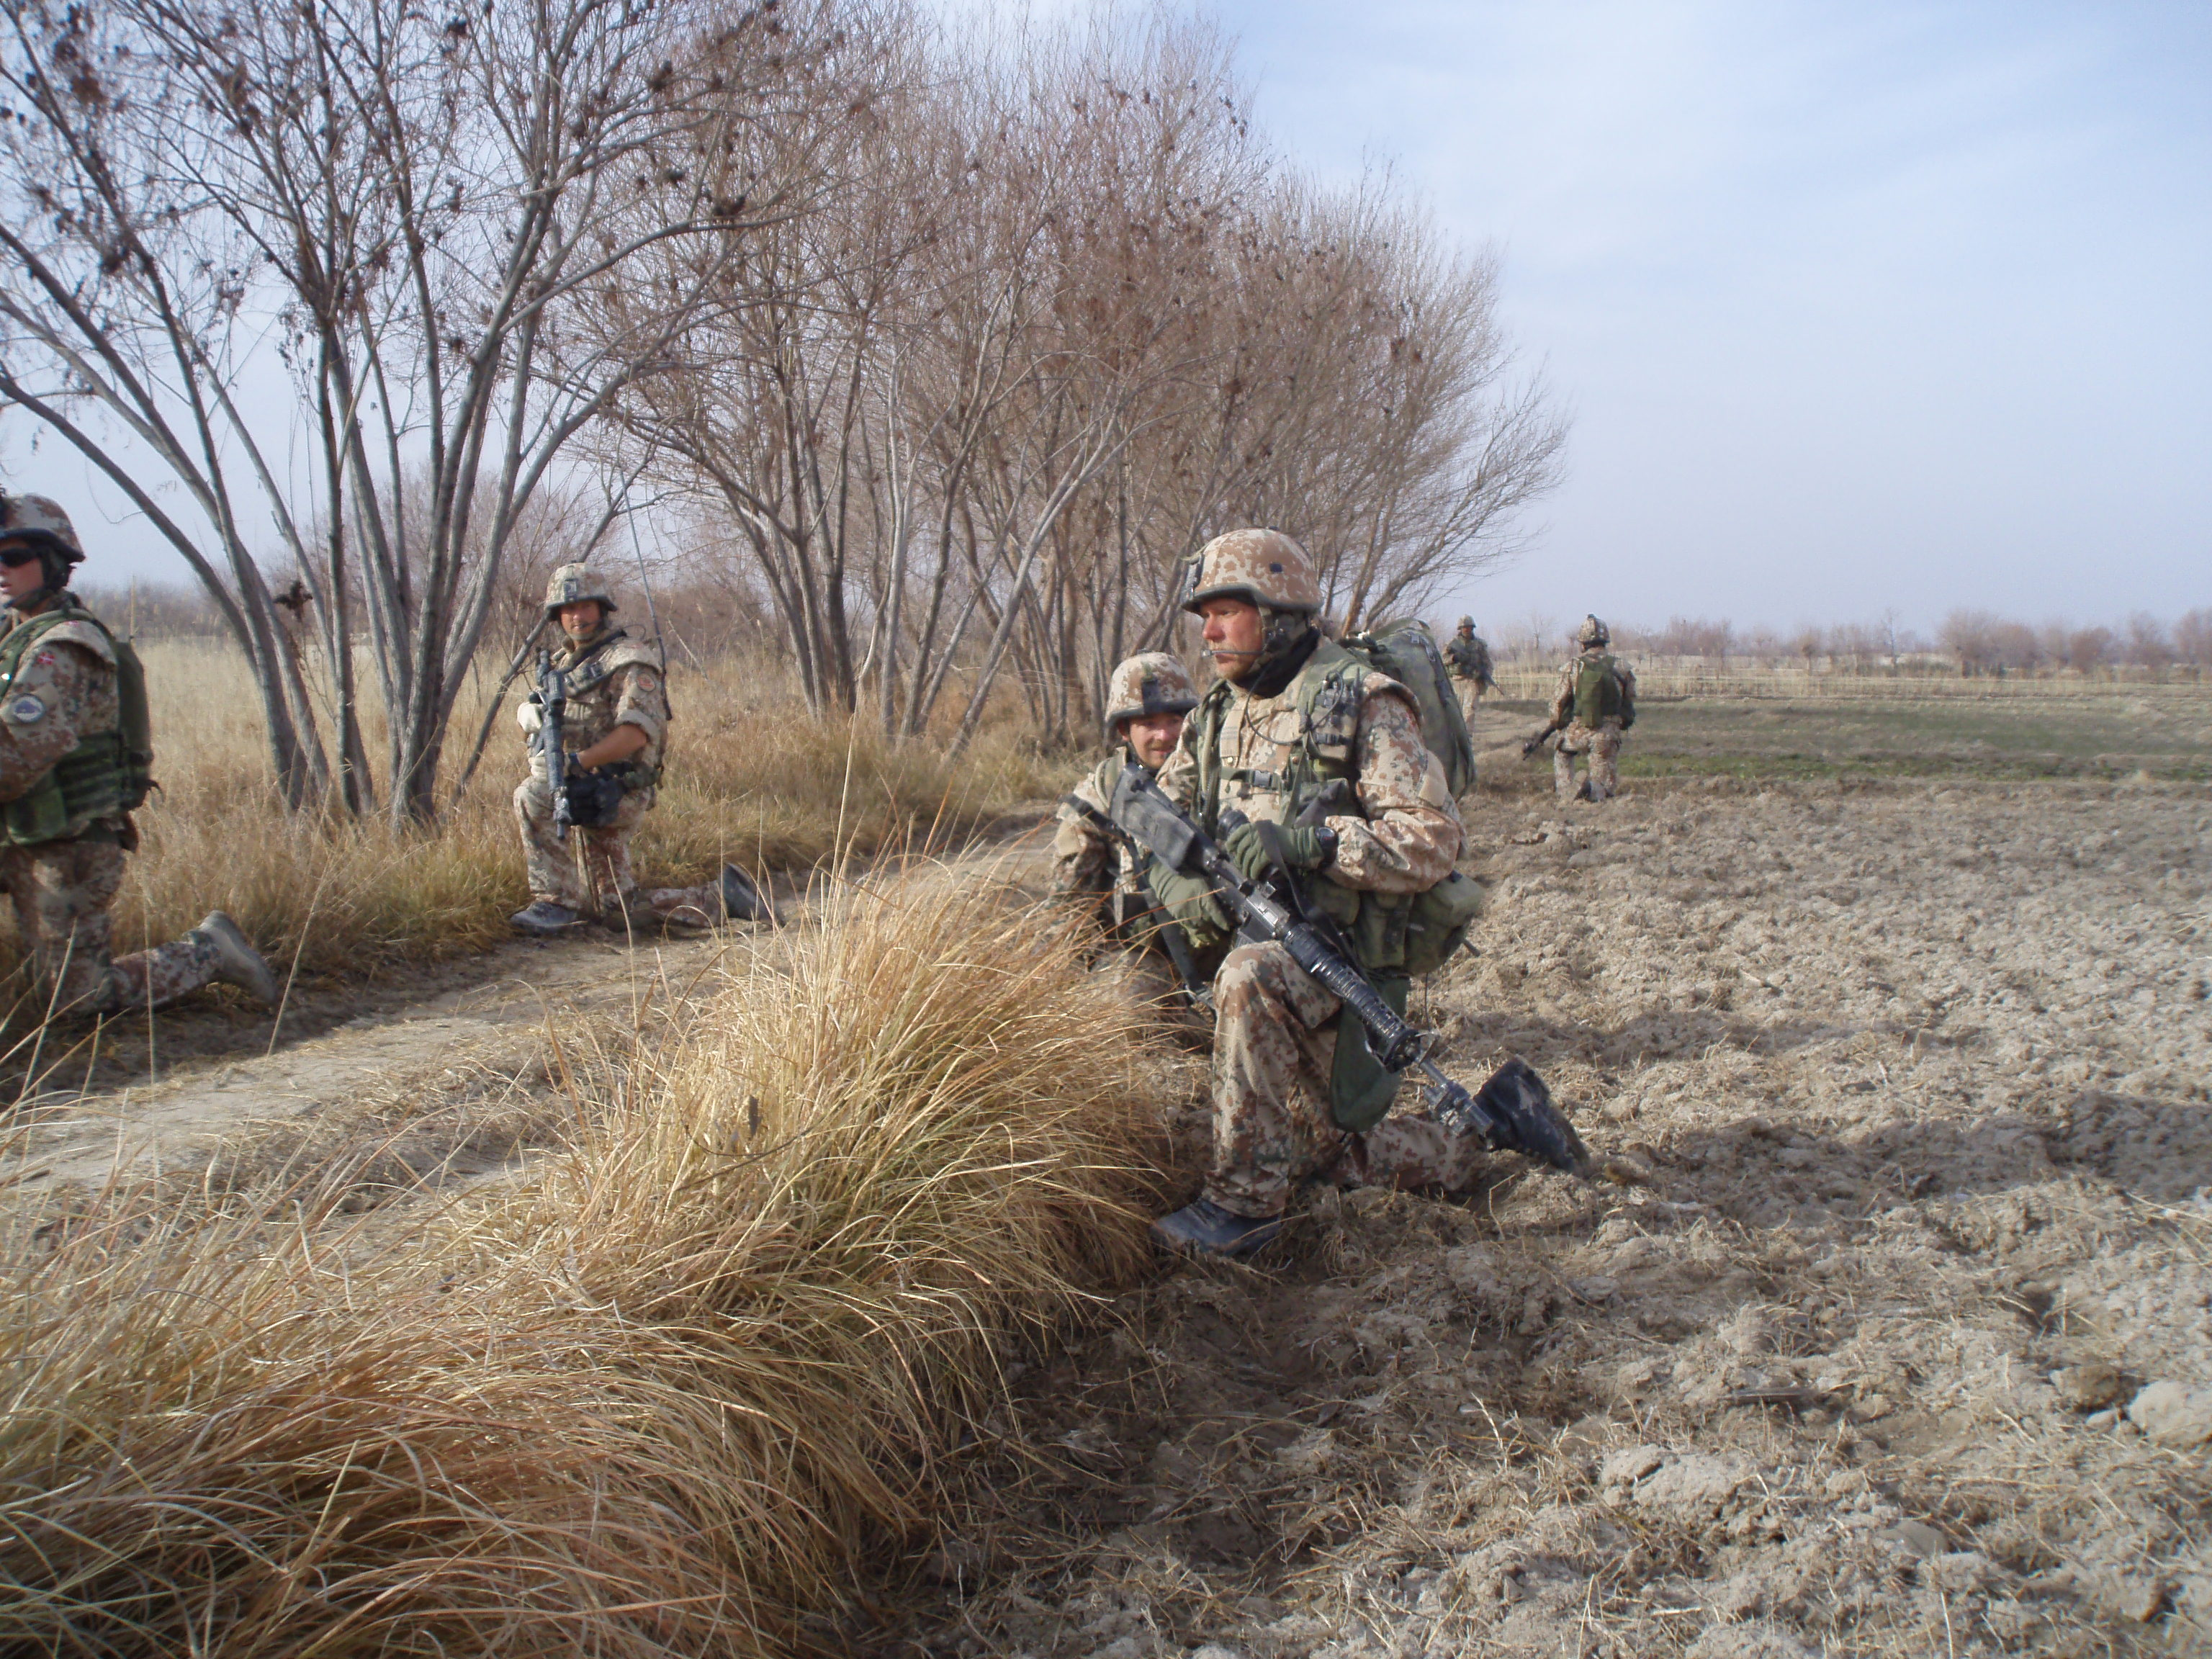 On patrol alongside a field in the Green Zone – springtime is coming. Note that the soldiers wear headsets through which they can communicate with each other and their superiors. Photo: HOK, 2008